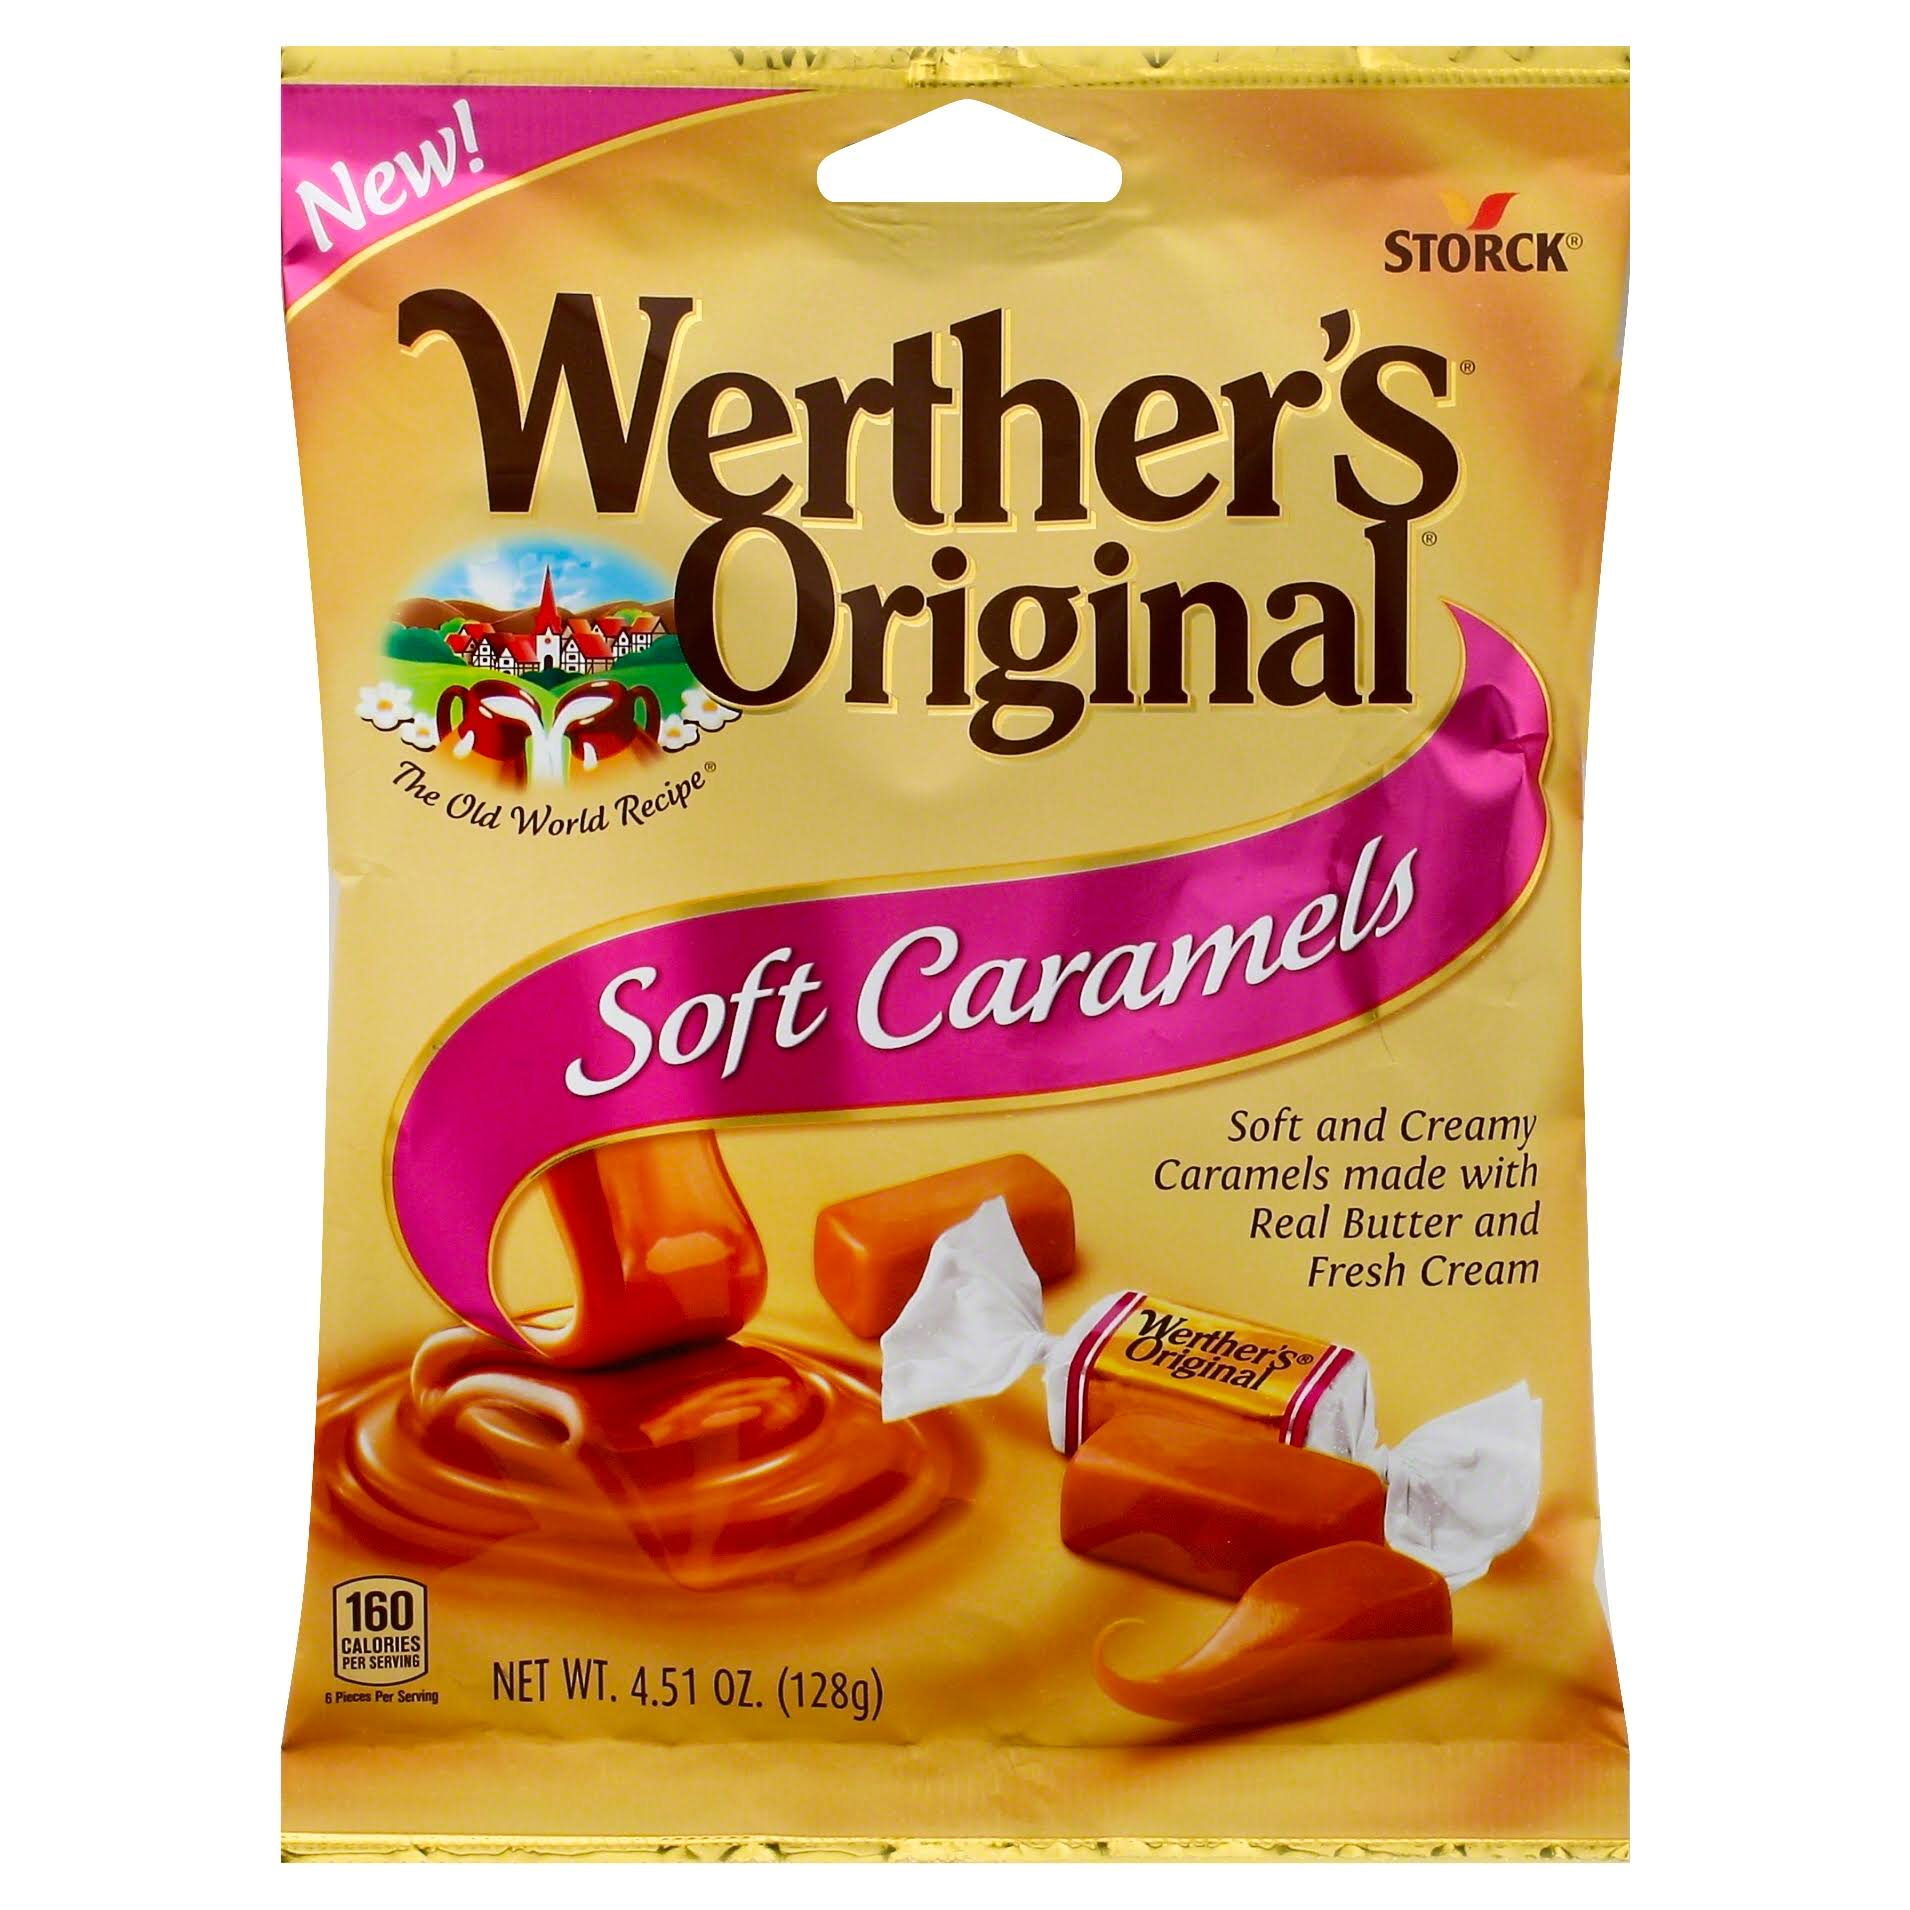 Werther's Original Soft Caramels - 128g